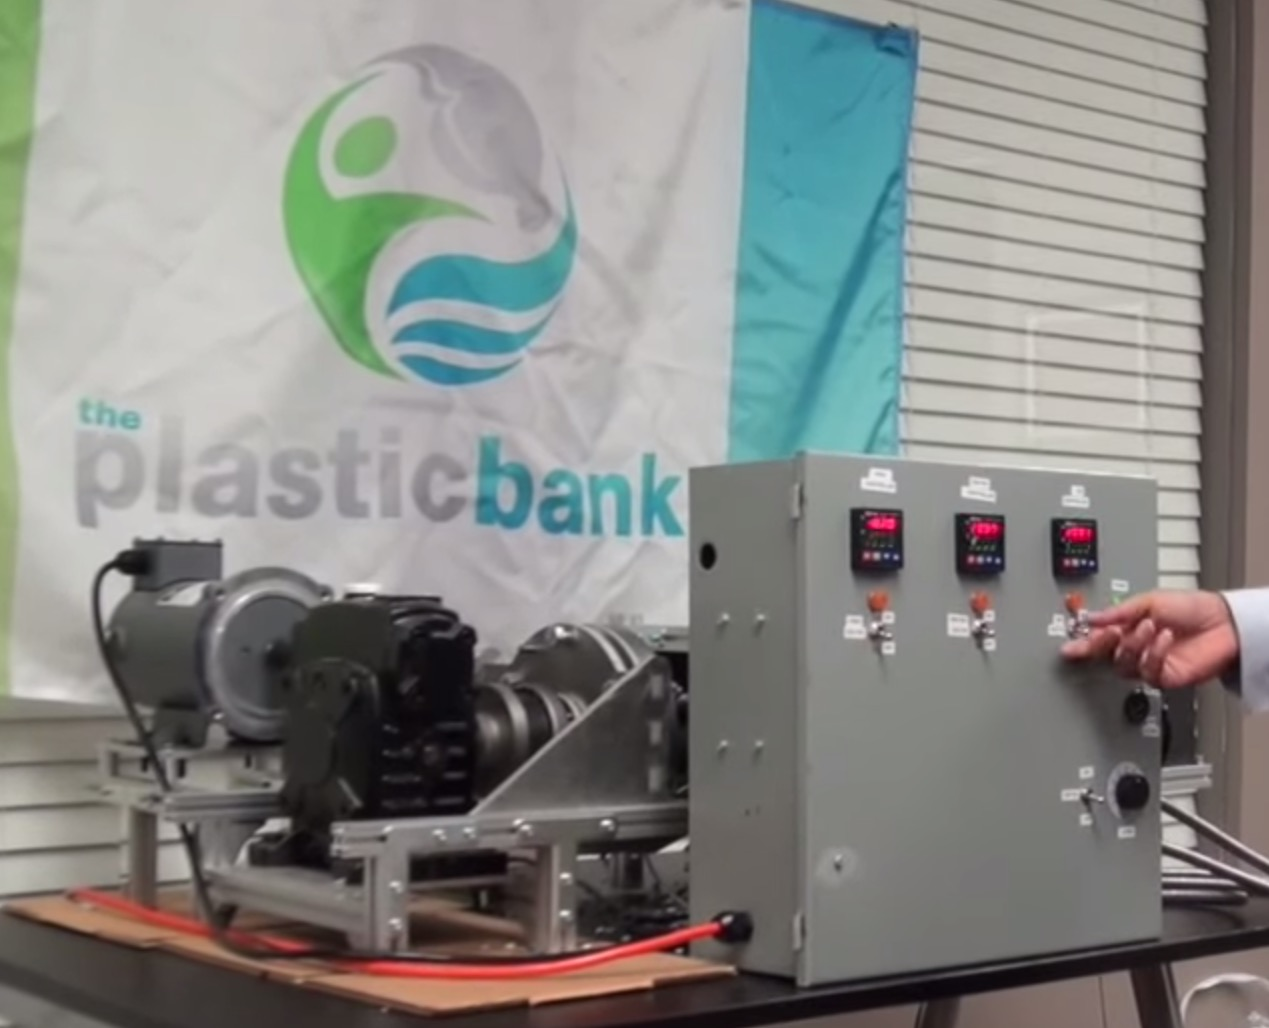 The Plasticbank Cleans Up Your Neighborhood